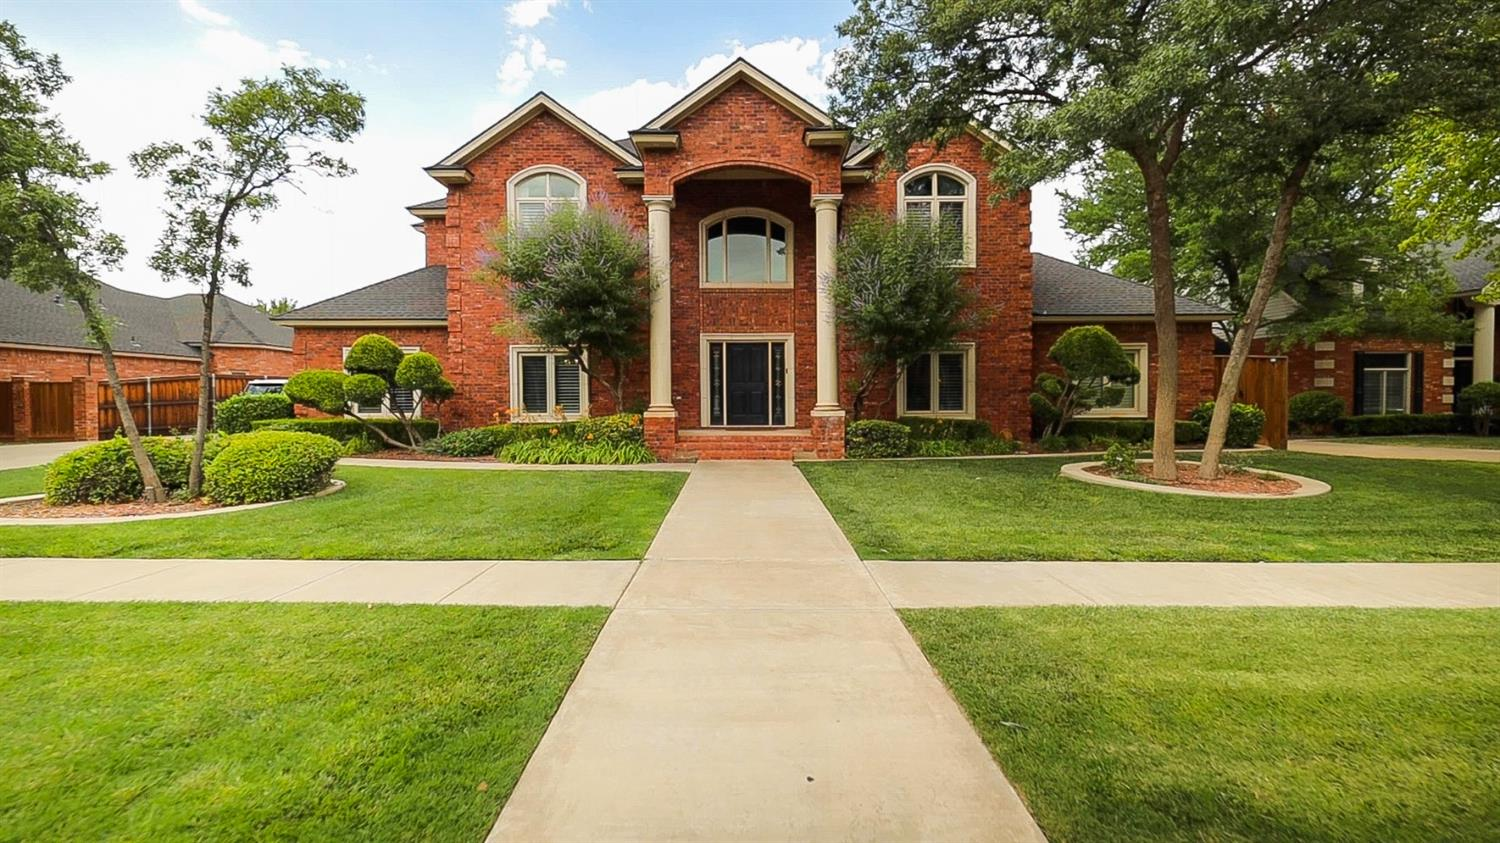 **MOTIVATED SELLER** 10K flooring allowance.  Gorgeous 5/5/3 home with basement/media & game room and pool! As you enter this beautiful home, you will notice an amazing spiral staircase stretching toward a soaring 20' ceiling. The living room offers a gorgeous paneled coffered ceiling. The spacious, open-concept kitchen features beautiful new granite countertops & backsplash, breakfast bar and island. The isolated master suite provides a tray ceiling, private access to an outdoor living space, double vanities, airflow tub, separate shower & large walk-in closet. The 3 secondary bedrooms are each isolated with their own private baths. This home also offers a beautiful office space right off of the entry. The spacious basement features its own heating and air system. The amazing backyard includes a  large covered patio, in-ground pool, hot tub & storage building.